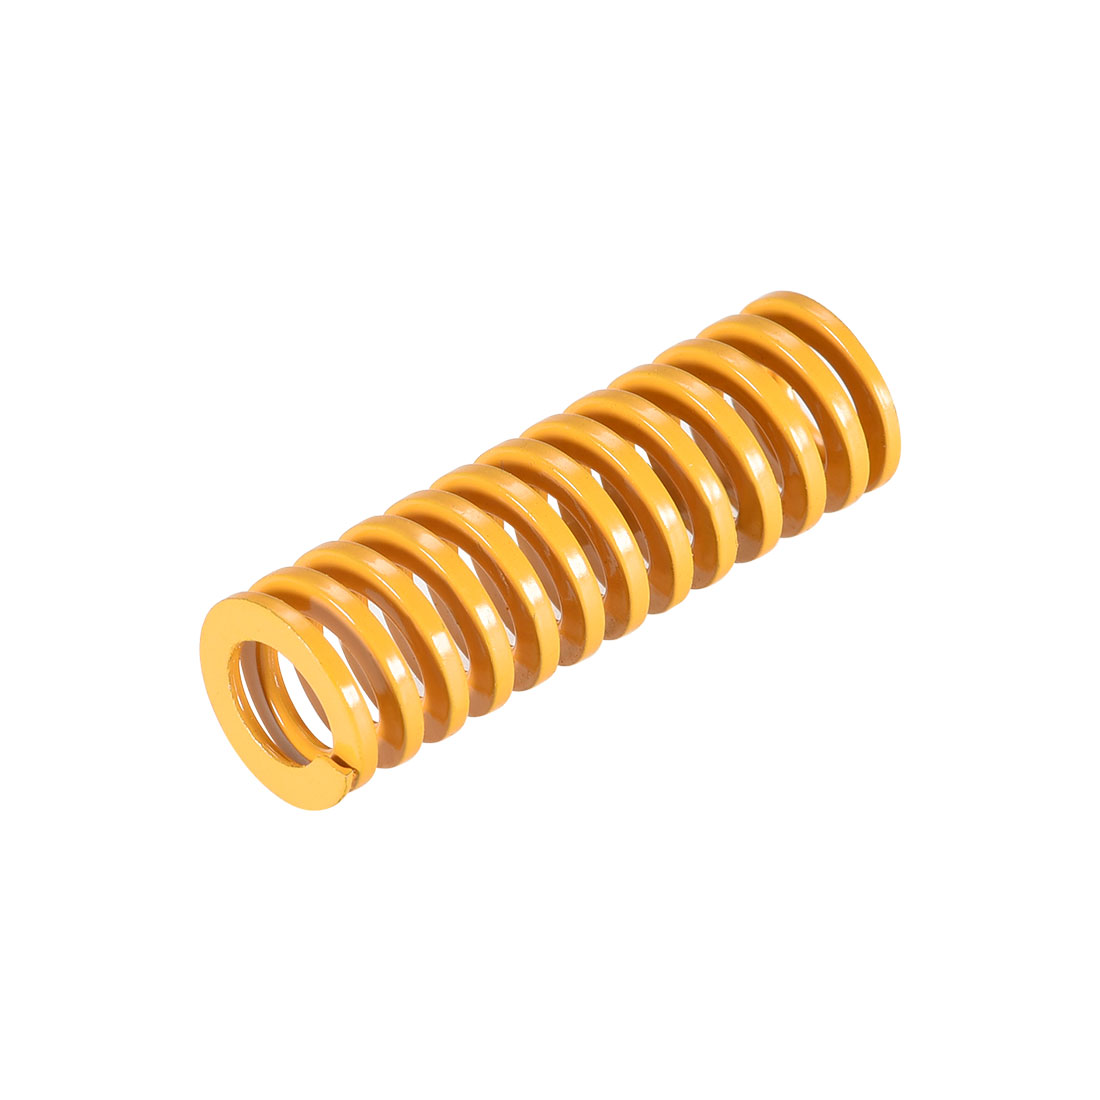 Heated Bed Springs for 3D Printer Light Load Compression Spring, 8 x 25 mm 16pcs